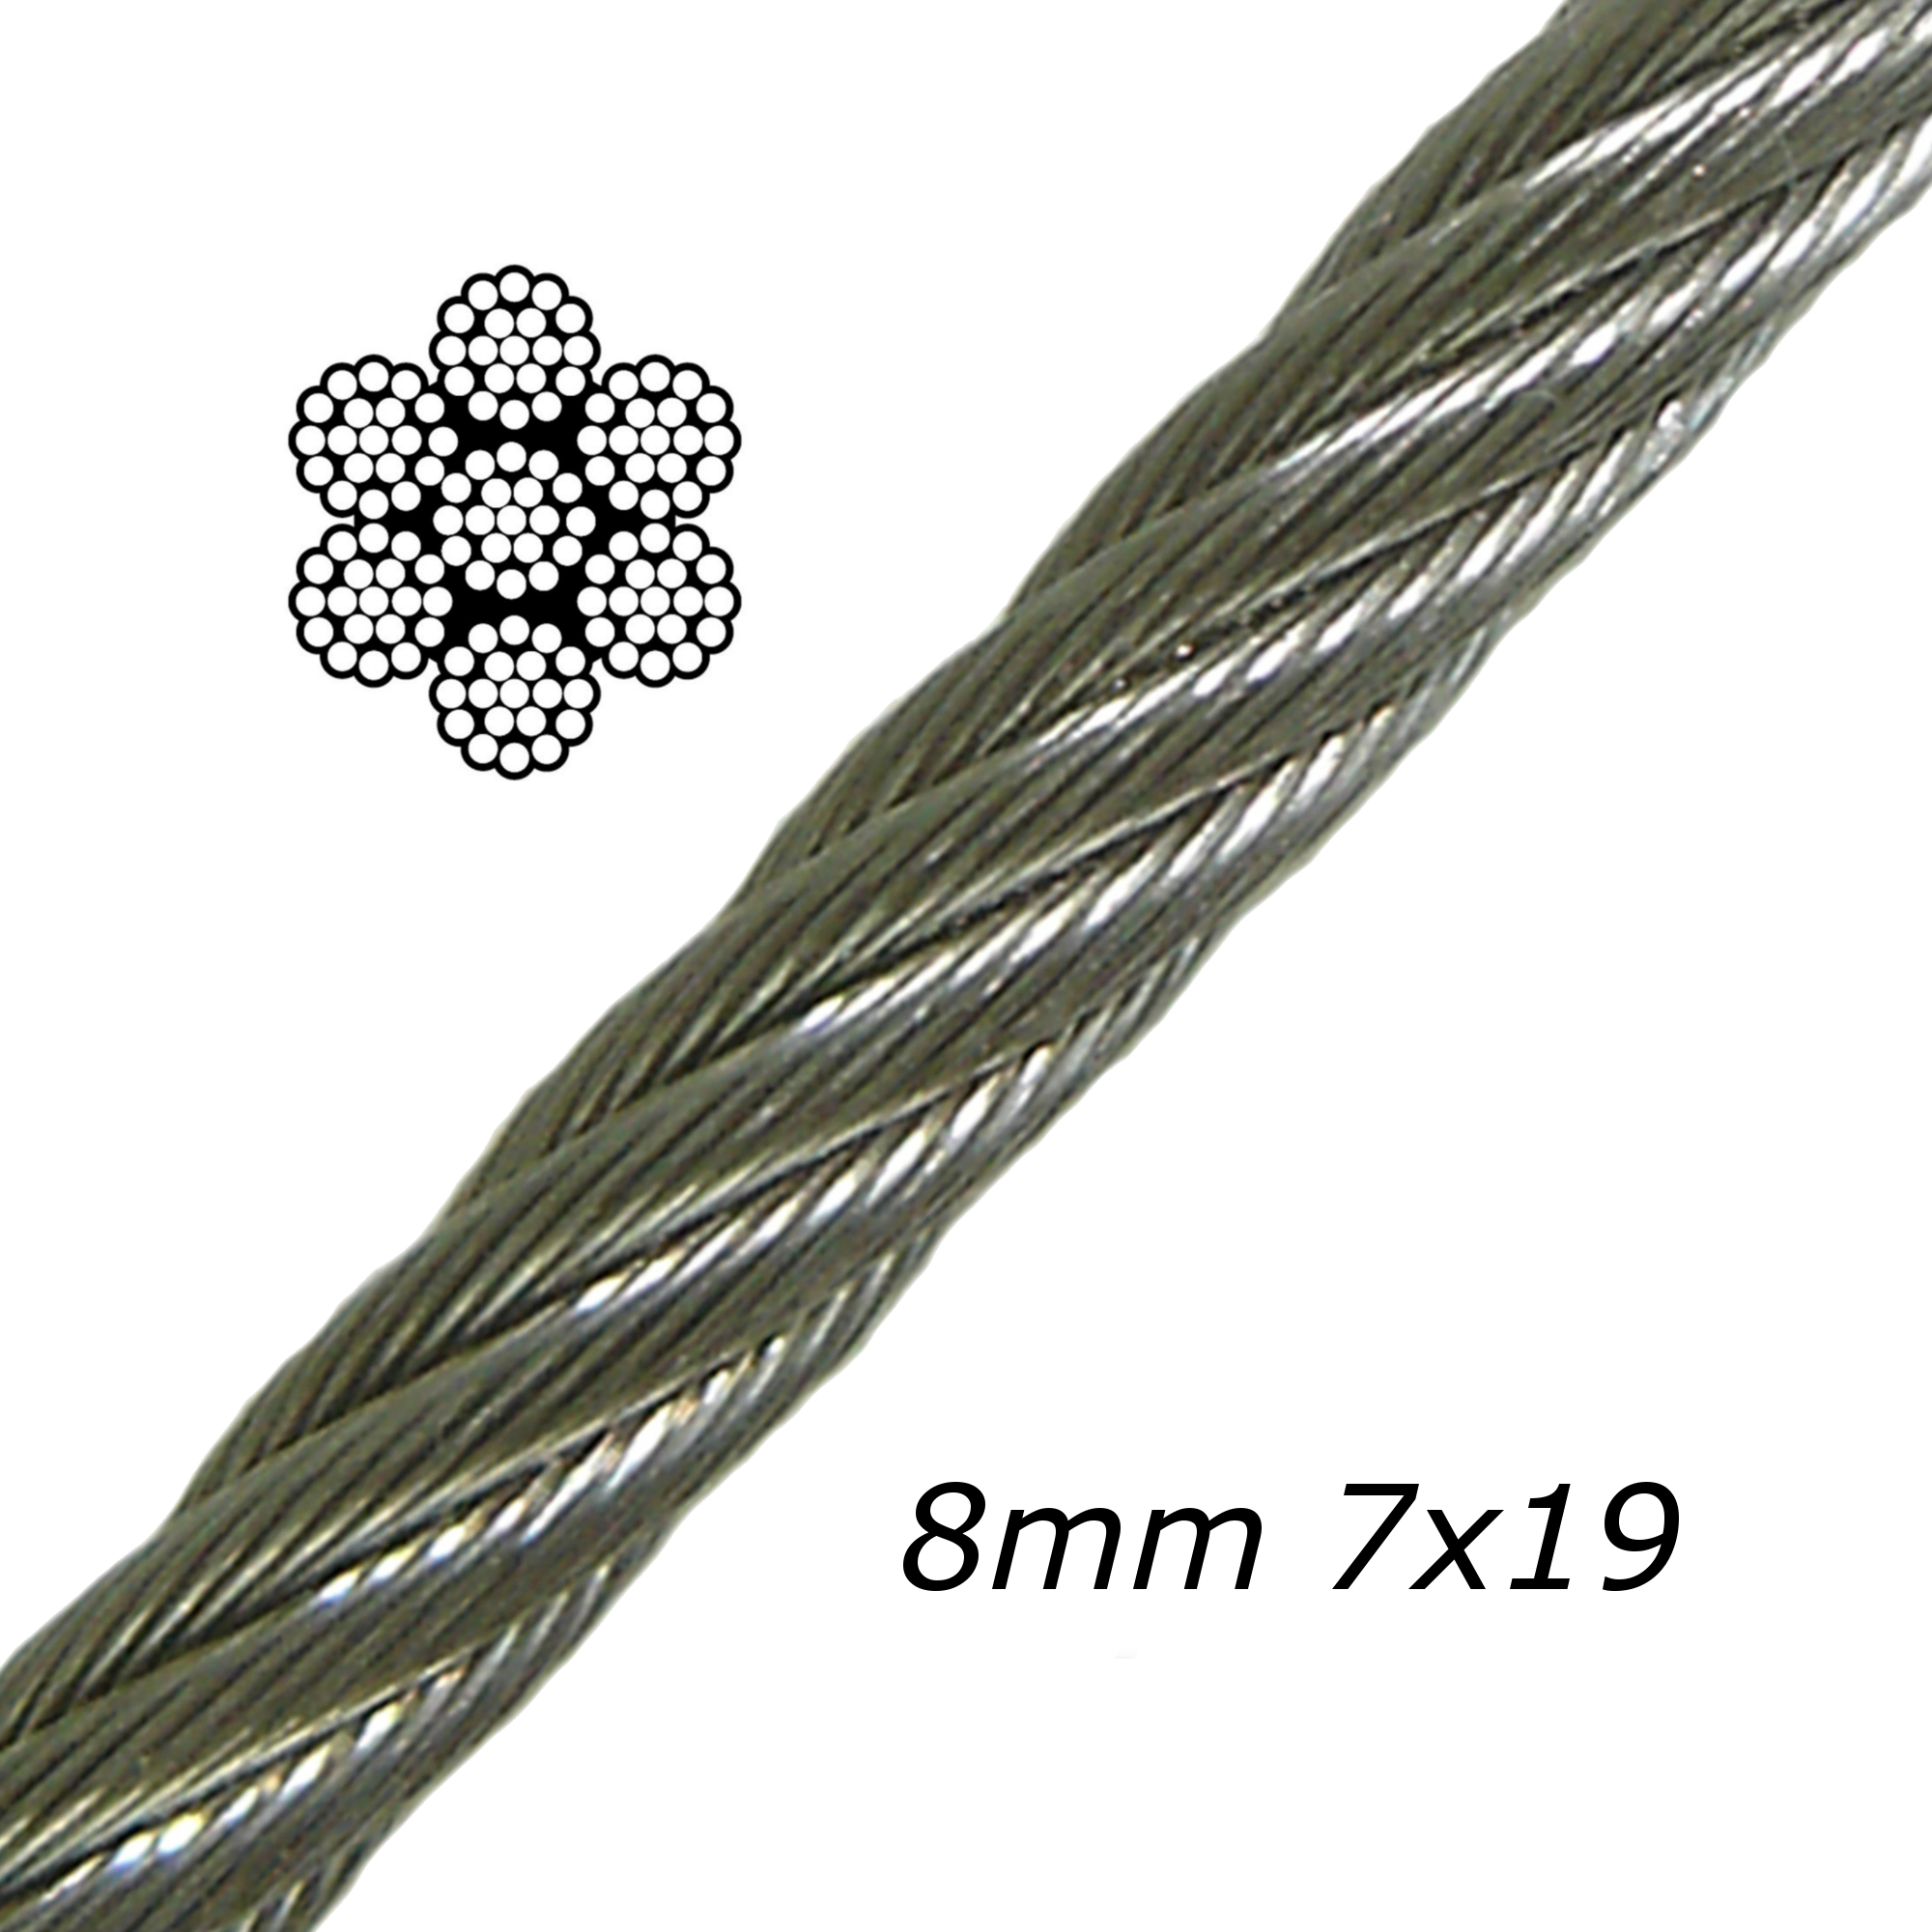 Diameter : 8mm // Length: 100m 2 x Thimble 4 x Rope Clamp Stainless Steel A4 Marine Grade Wire Rope Cable